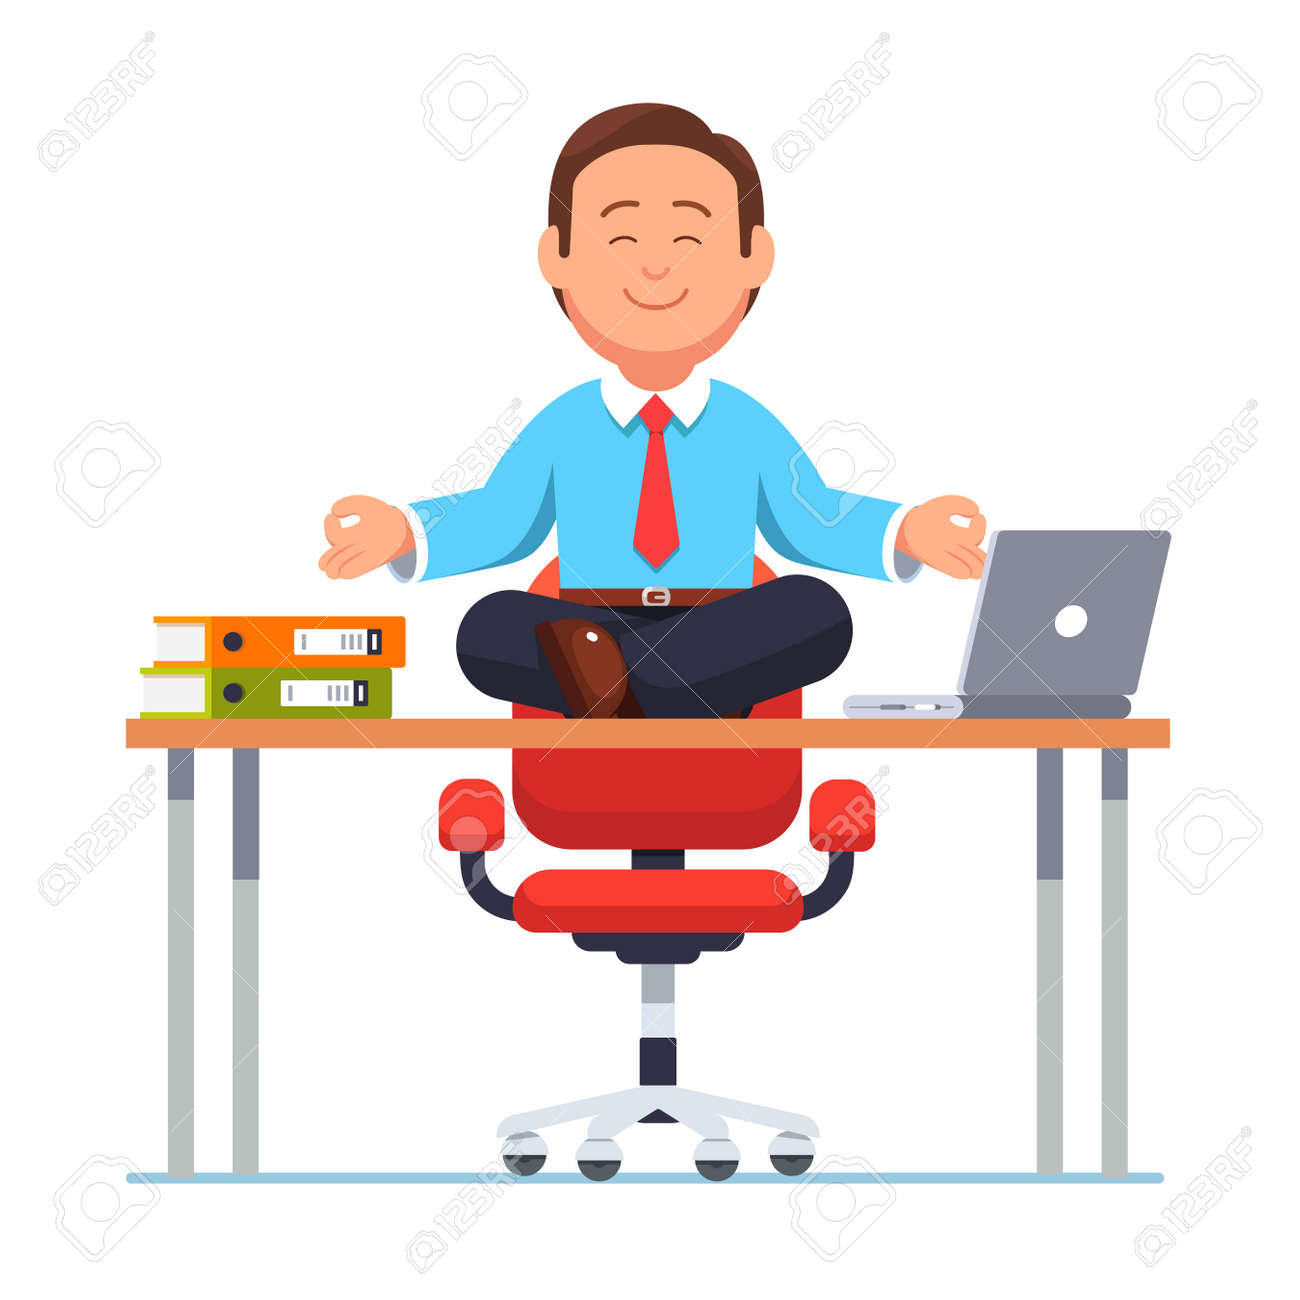 Business Man Sitting On Office Desk In Yoga Pose Royalty Free Cliparts Vectors And Stock Illustration Image 77141698